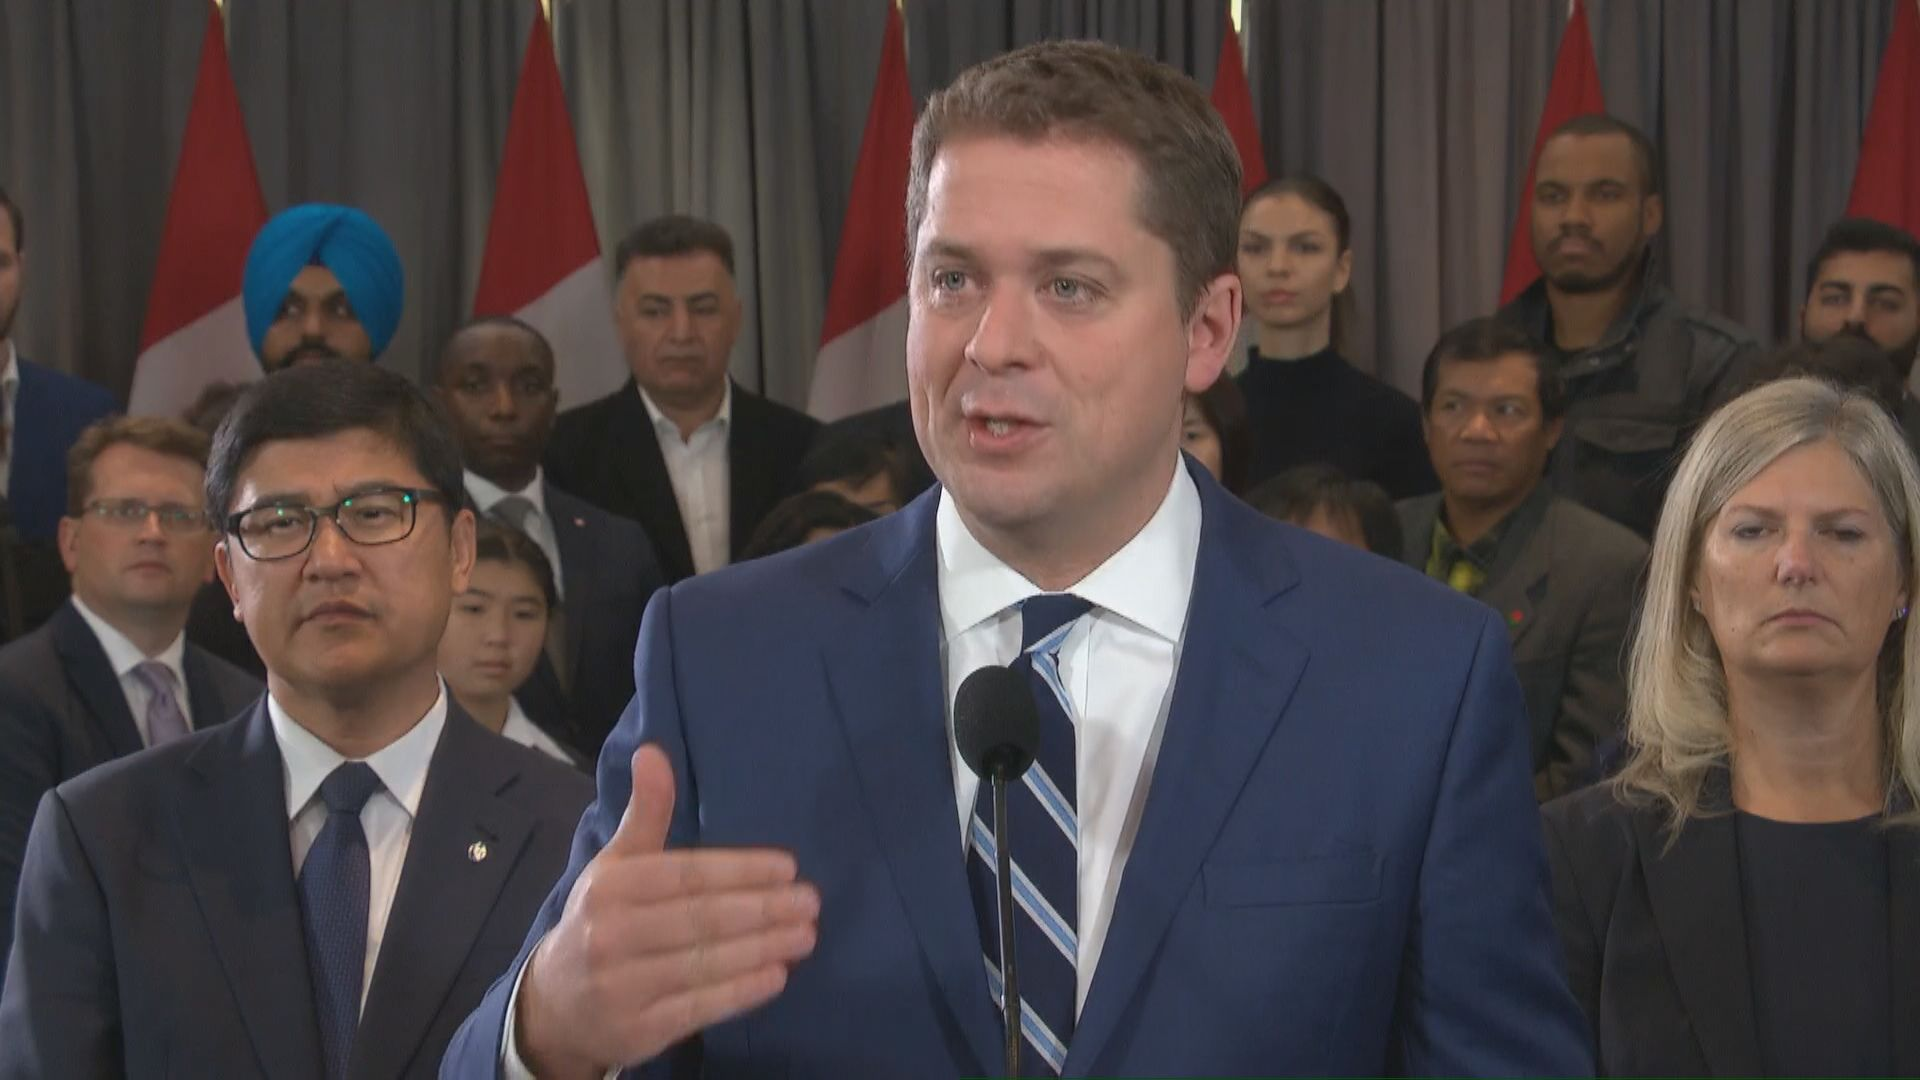 Federal Election 2019: Scheer accuses Trudeau of 'fighting with provinces'